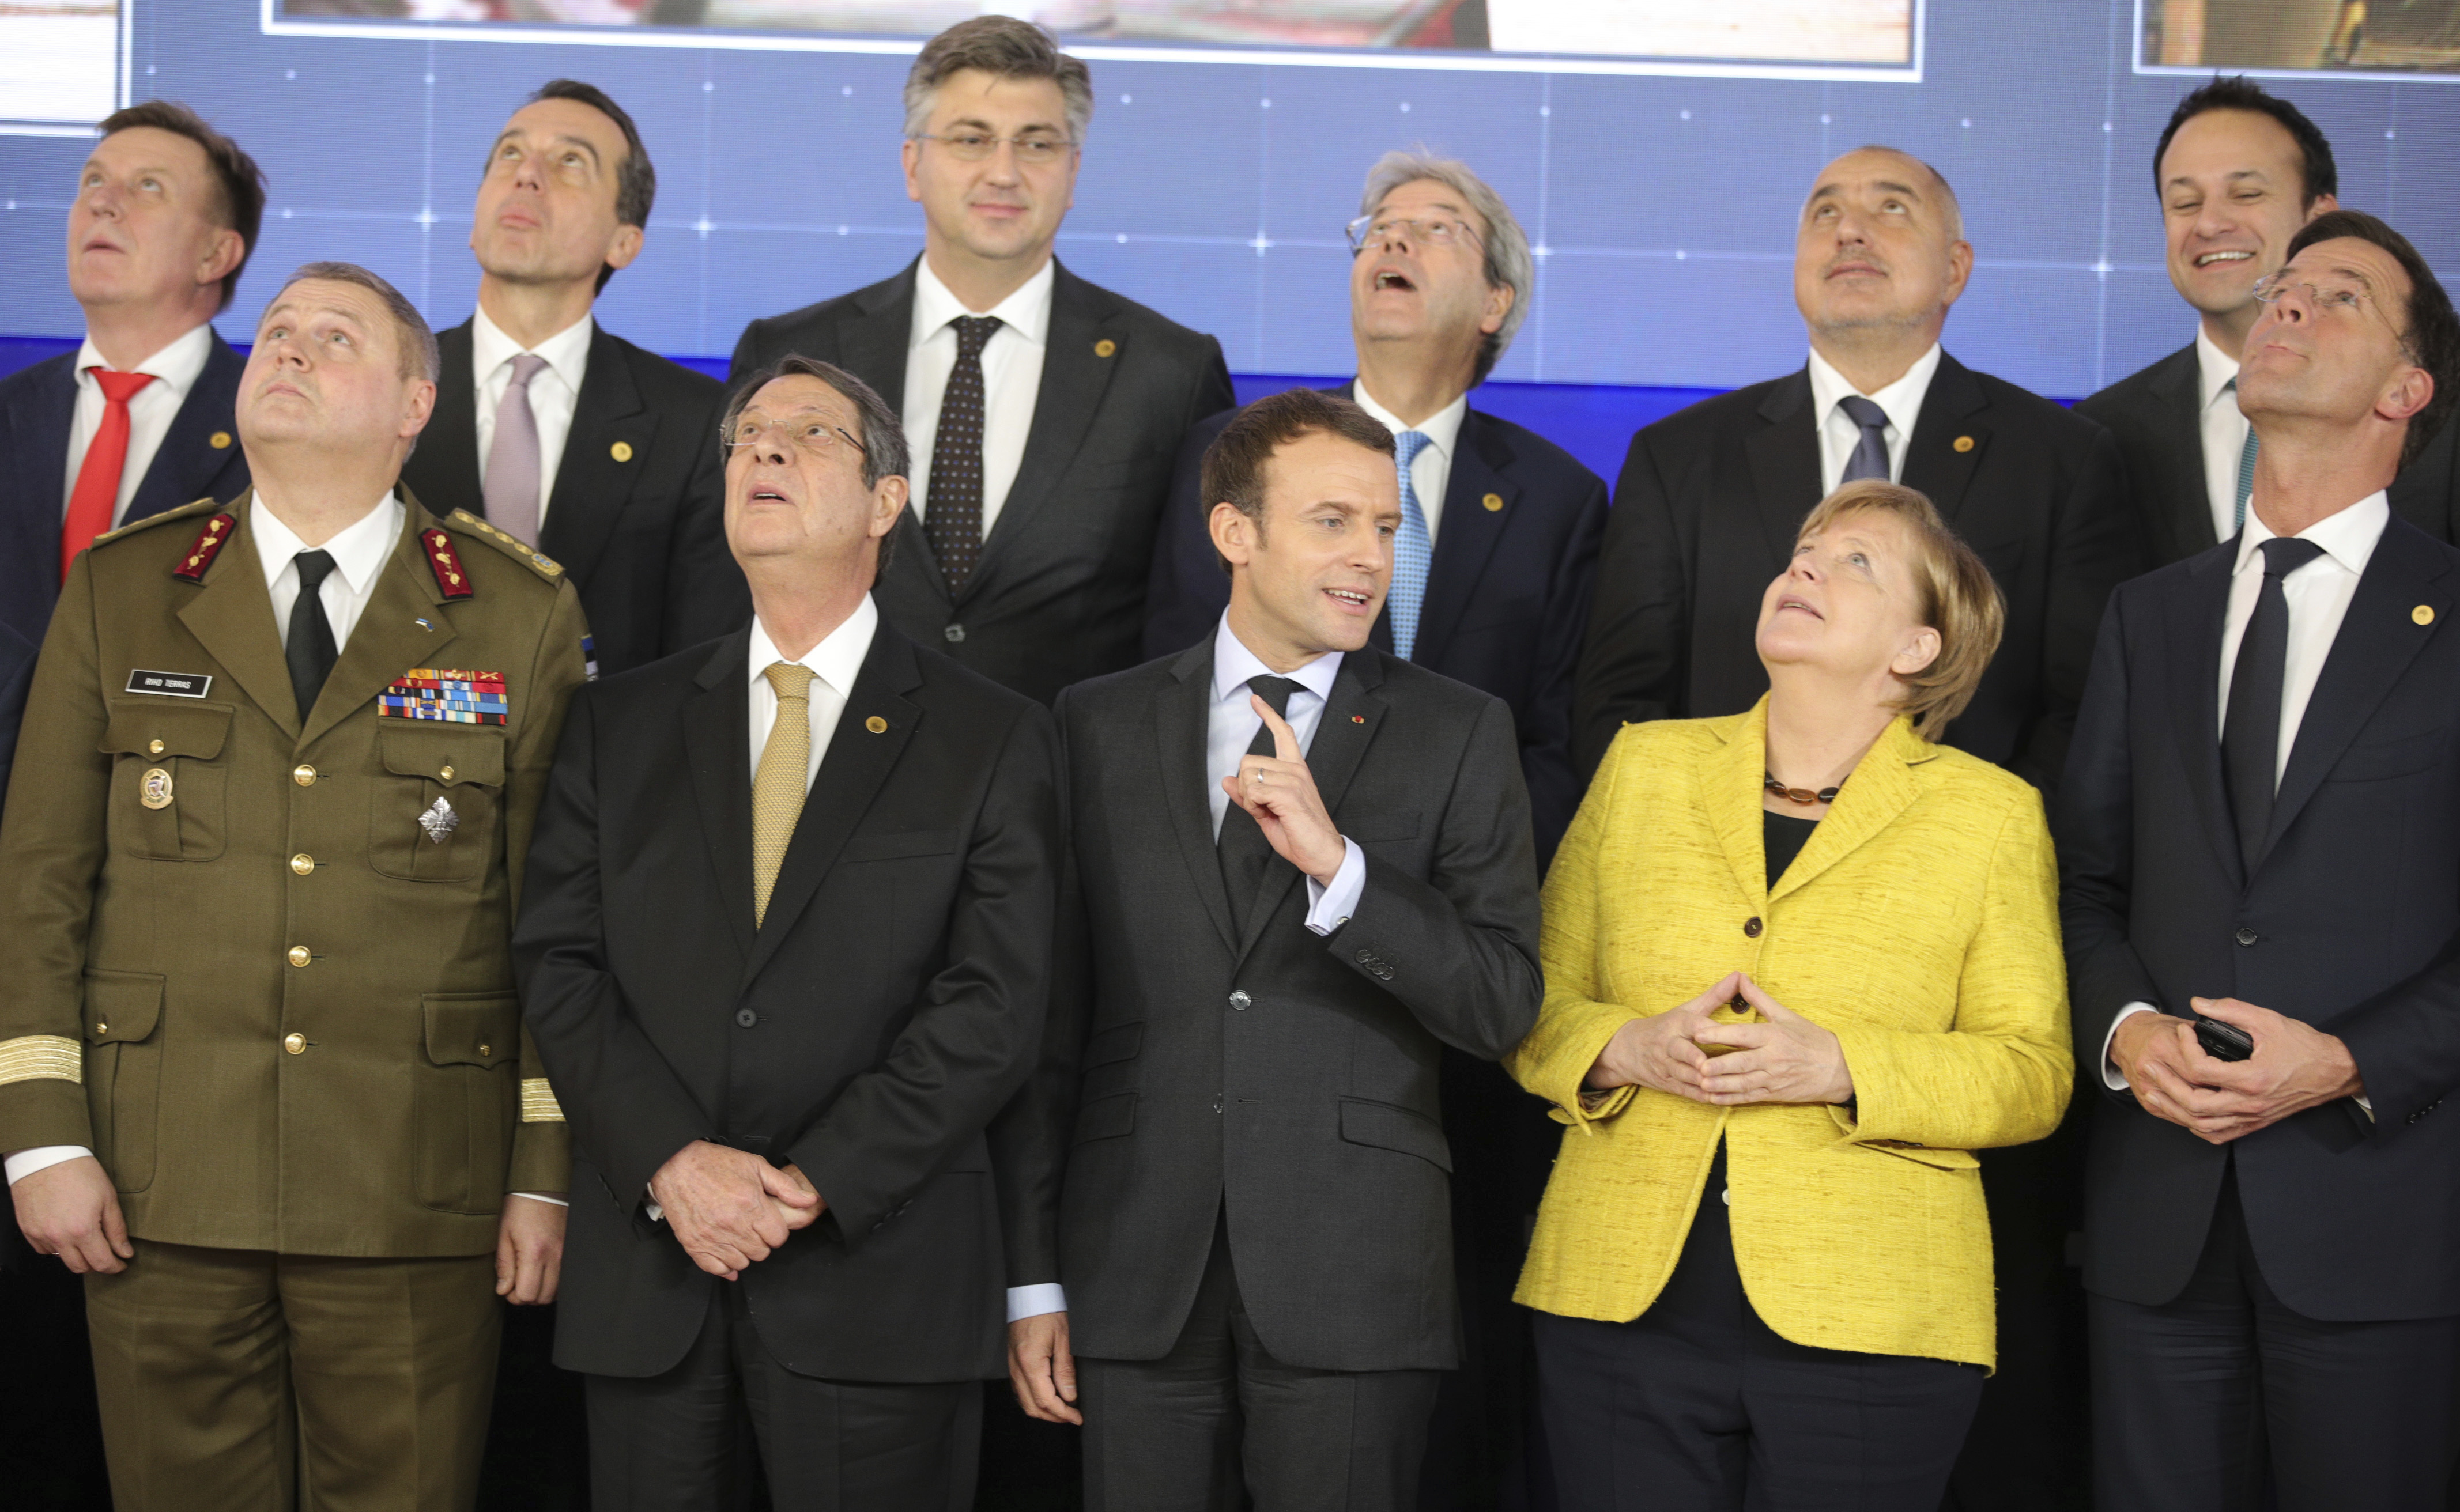 French President Emmanuel Macron, front center, speaks with German Chancellor Angela Merkel, front second right, as they look up at a drone flying above their heads during a group photo at an EU summit at the Europa building in Brussels, Dec. 14, 201...